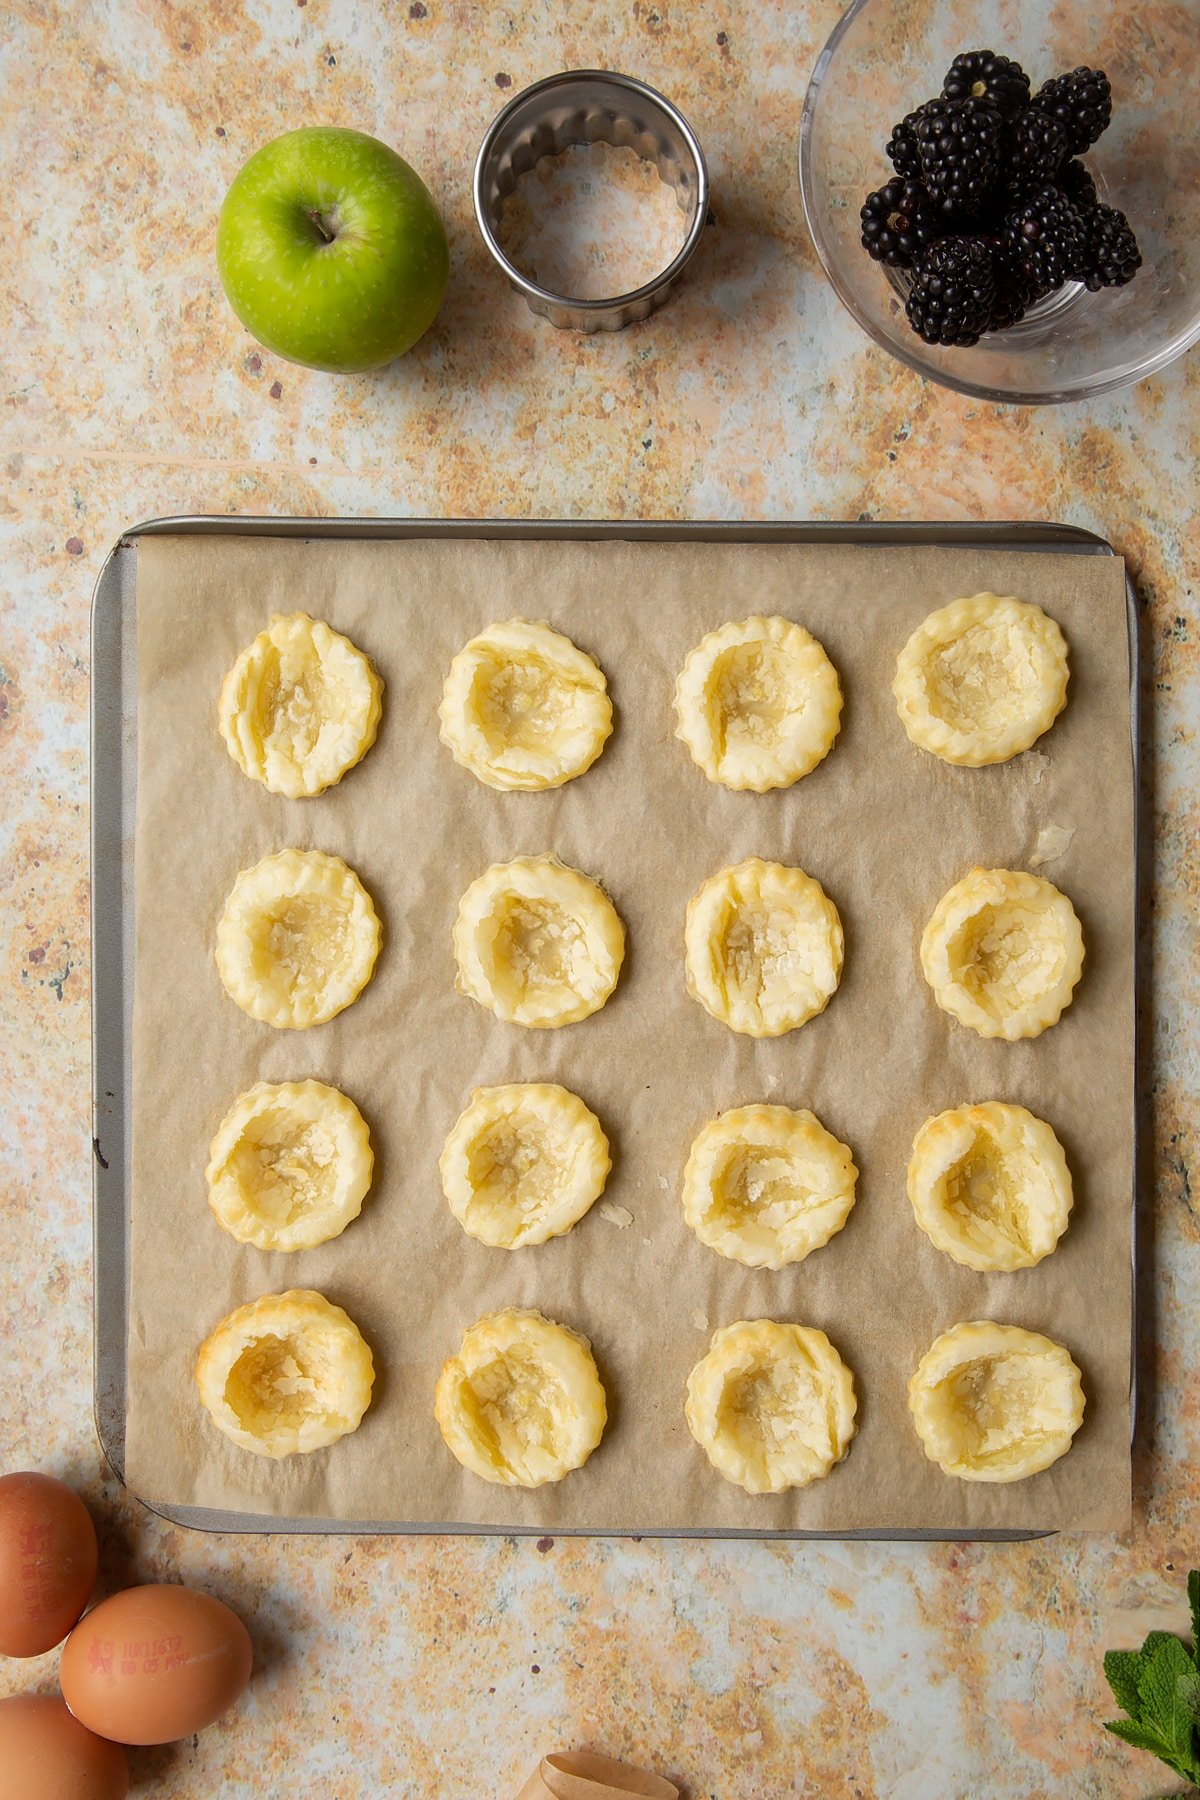 16 puff pastry discs with the middles pressed in sit on a lined baking sheet.